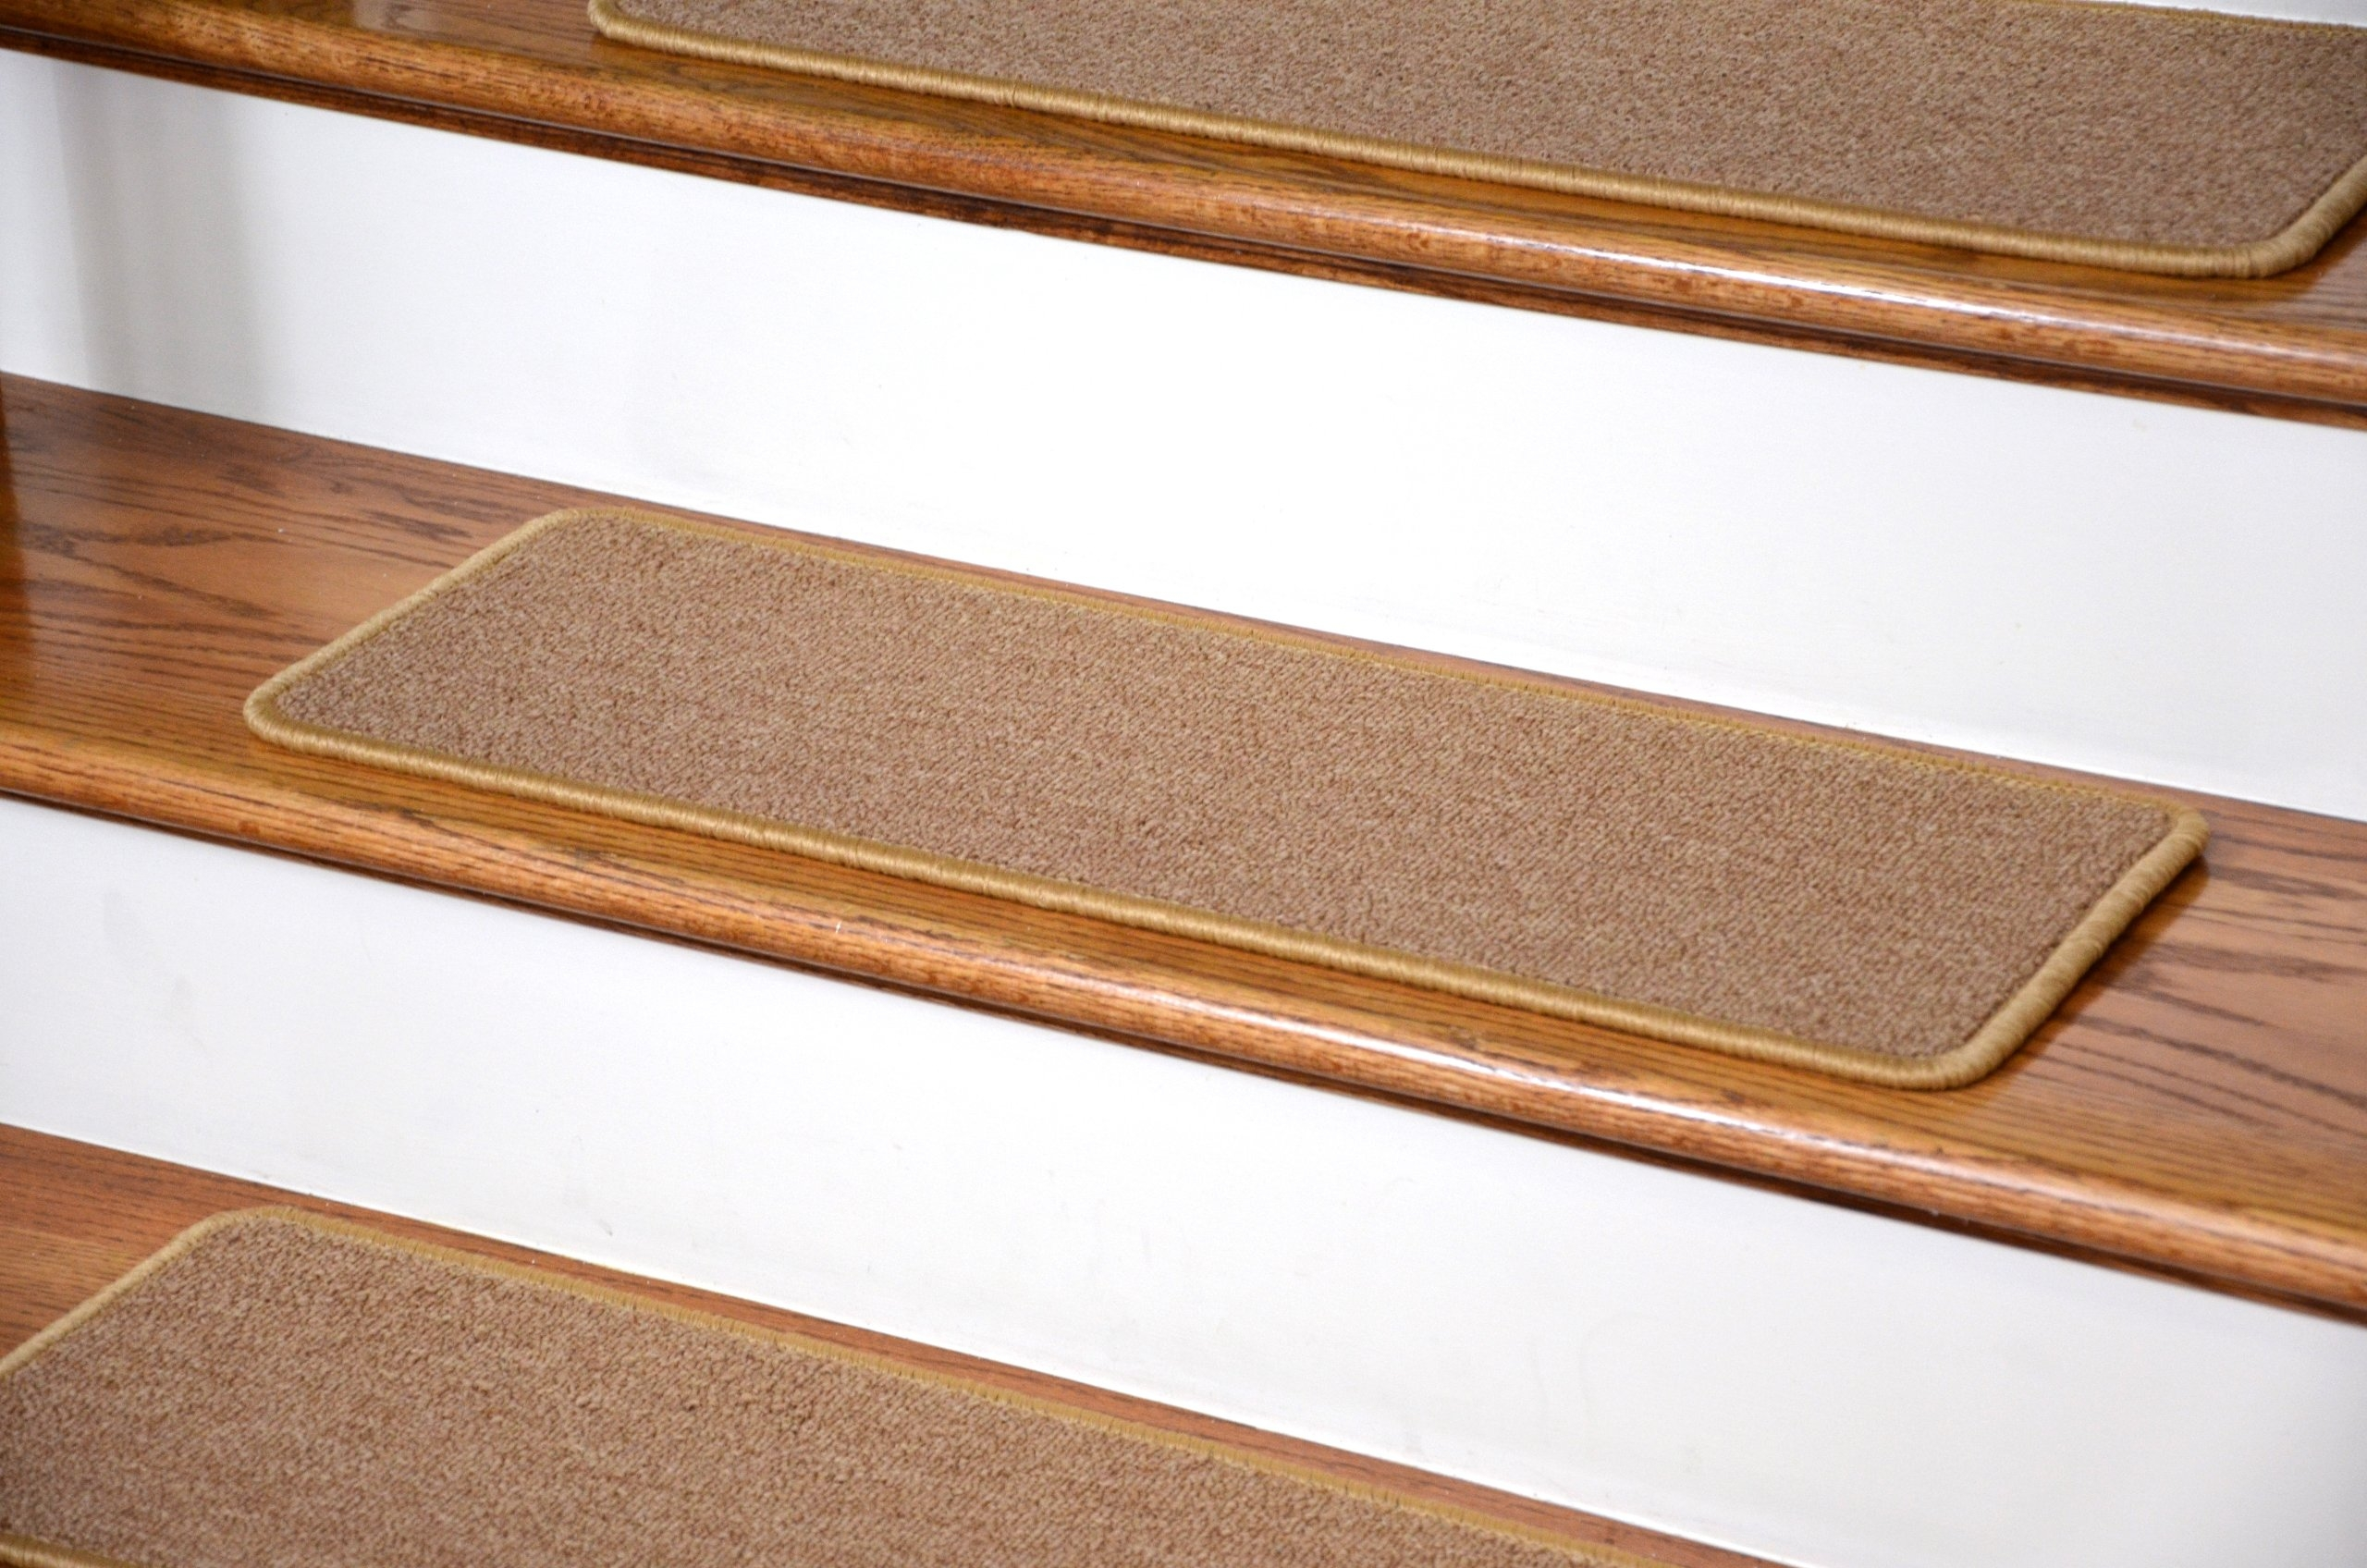 Dean Diy Peel And Stick Serged Non Skid Carpet Stair Treads   Stick On Stair Runners   Steel Gray   Bullnose Carpet   Stair Riser   Area Rugs   Non Skid Carpet